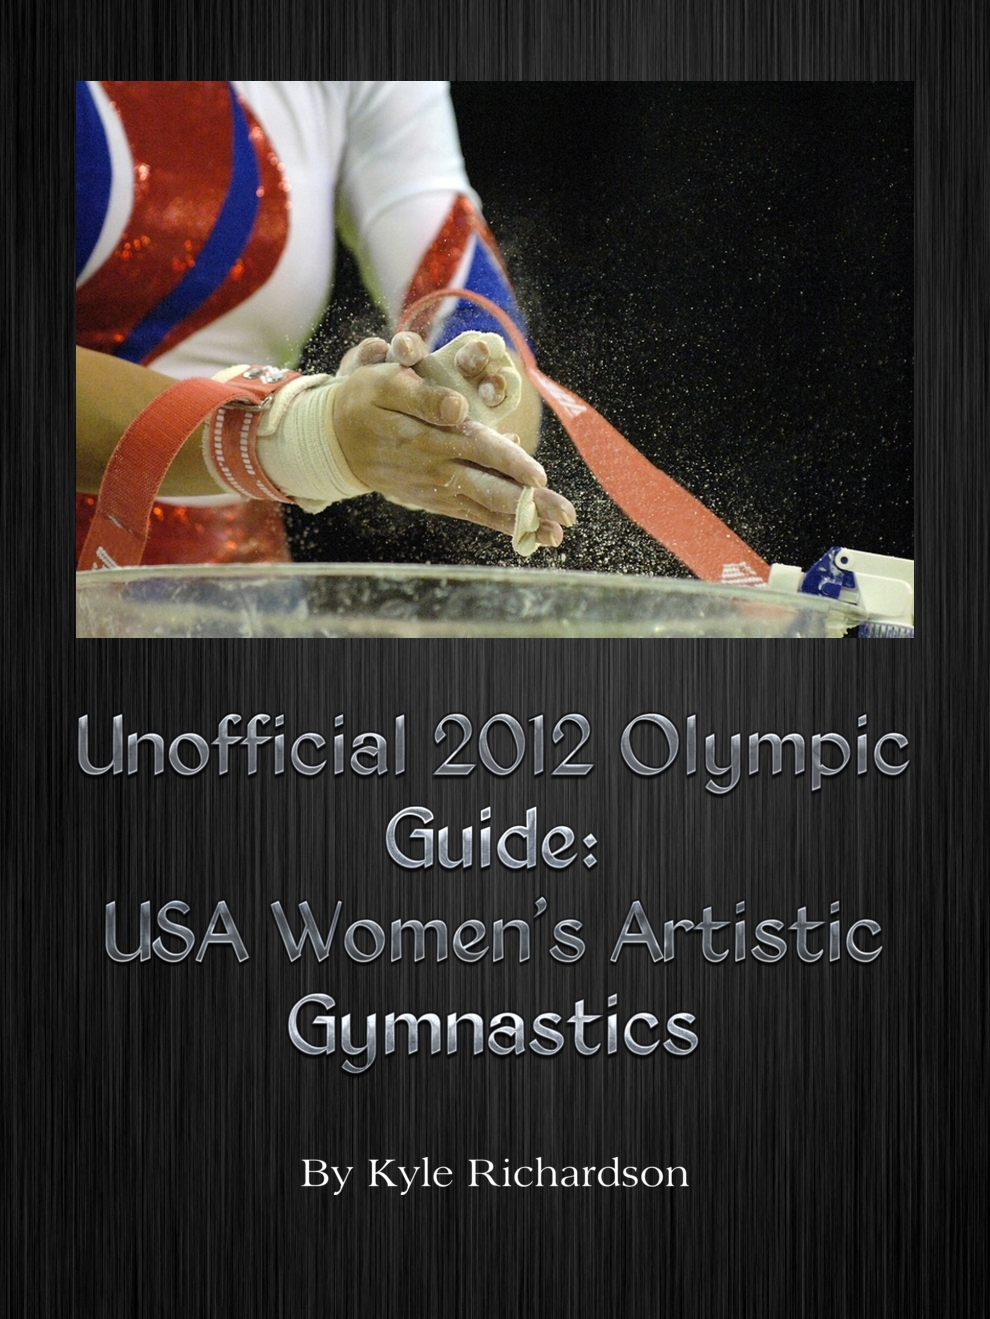 Unofficial 2012 Olympic Guides: USA Women's Artistic Gymnastics